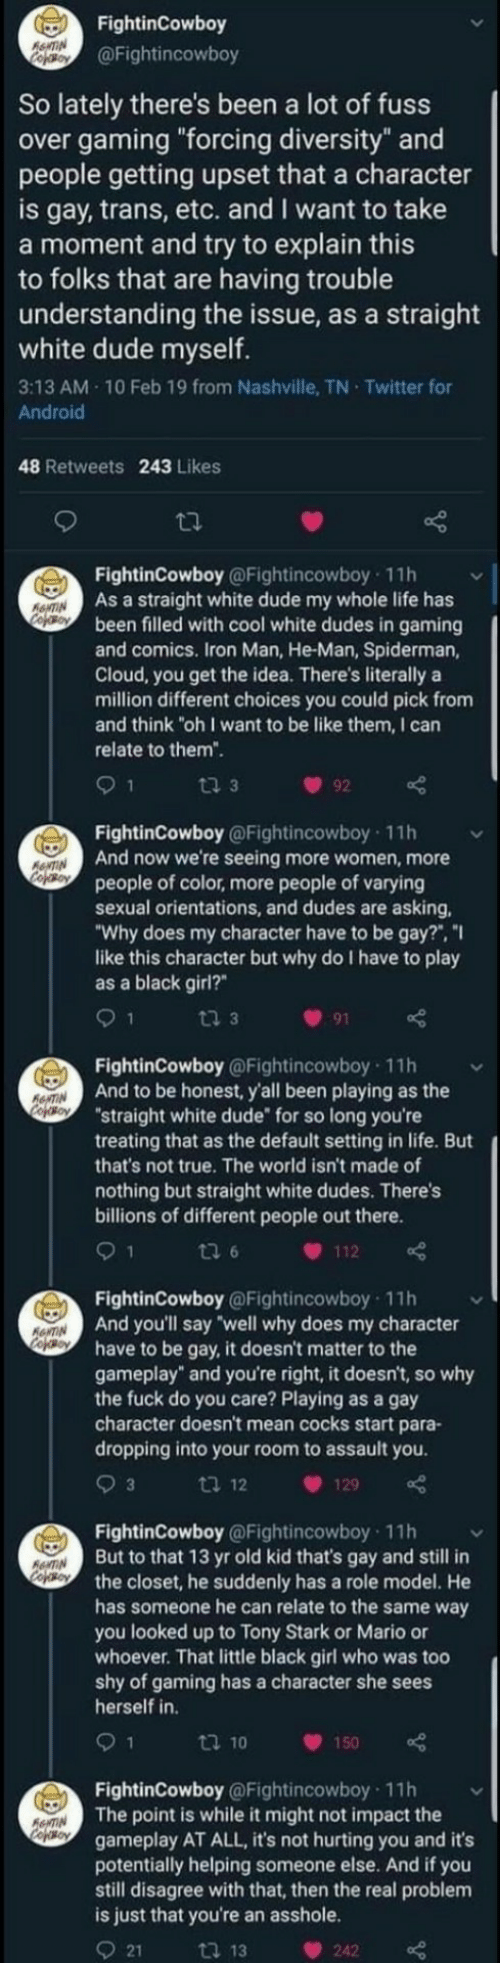 "Doesnt Matter: FightinCowboy  RewTIN  Cefoy  @Fightincowboy  So lately there's been a lot of fuss  over gaming ""forcing diversity"" and  people getting upset that a character  is gay, trans, etc. and I want to take  a moment and try to explain this  to folks that are having trouble  understanding the issue, as a straight  white dude myself.  3:13 AM 10 Feb 19 from Nashville, TN Twitter for  Android  48 Retweets 243 Likes  FightinCowboy @Fightincowboy 11h  As a straight white dude my whole life has  been filled with cool white dudes in gaming  and comics. Iron Man, He-Man, Spiderman,  Cloud, you get the idea. There's literally a  million different choices you could pick from  and think ""oh I want to be like them, I can  ANTIN  Cooy  relate to them"".  ti 3  92  FightinCowboy @Fightincowboy 11h  And now we're seeing more women, more  people of color, more people of varying  sexual orientations, and dudes are asking  ""Why does my character have to be gay?"", ""I  like this character but why do I have to play  as a black girl?  ANTIN  CofoBoy  9 1  ti 3  91  FightinCowboy @Fightincowboy 11h  And to be honest, y'all been playing as the  ""straight white dude for so long you're  treating that as the default setting in life. But  that's not true. The world isn't made of  RNTIN  CopOBoY  nothing but straight white dudes. There's  billions of different people out there.  1  ti 6  112  FightinCowboy @Fightincowboy 11h  And you'll say well why does my character  have to be gay, it doesn't matter to the  gameplay"" and you're right, it doesn't, so why  the fuck do you care? Playing as a gay  character doesn't mean cocks start para-  dropping into your room to assault you  ANTIN  cofeo  3  ti 12  129  FightinCowboy @Fightincowboy 11h  But to that 13 yr old kid that's gay and still in  the closet, he suddenly has a role model. He  has someone he can relate to the same way  you looked up to Tony Stark or Mario or  whoever. That little black girl who was too  shy of gaming has a character she sees  herself in  AANTIN  Cojso  9 1  t 10  150  FightinCowboy @Fightincowboy 11h  The point is while it might not impact the  gameplay AT ALL, it's not hurting you and it's  potentially helping someone else. And if you  still disagree with that, then the real problem  is just that you're an asshole.  AeNTIN  Cofeso  21  ti 13  242"